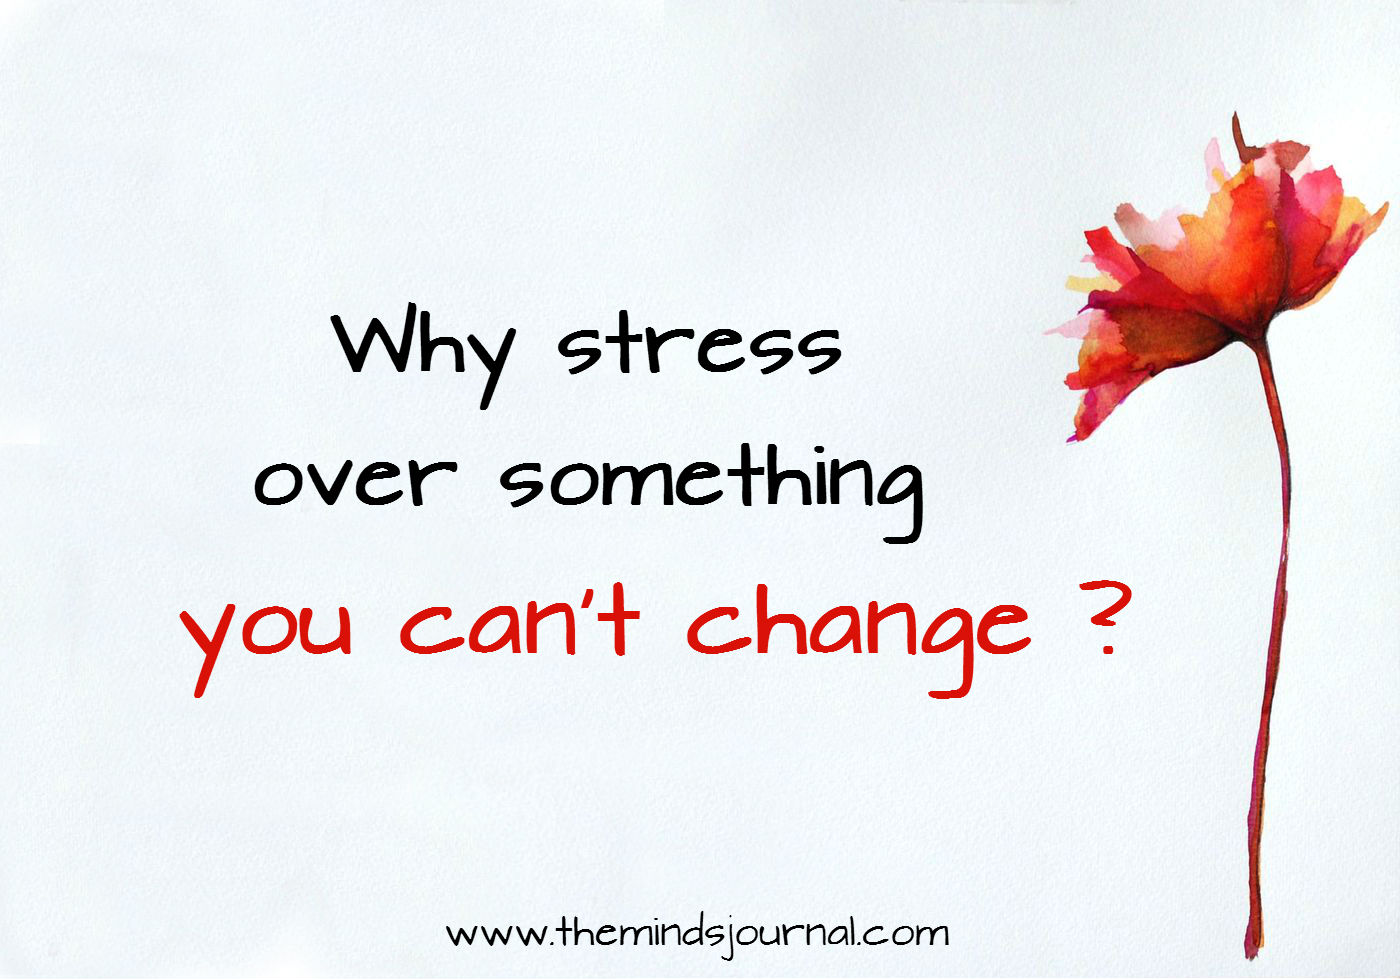 Why stress over something you can't change?